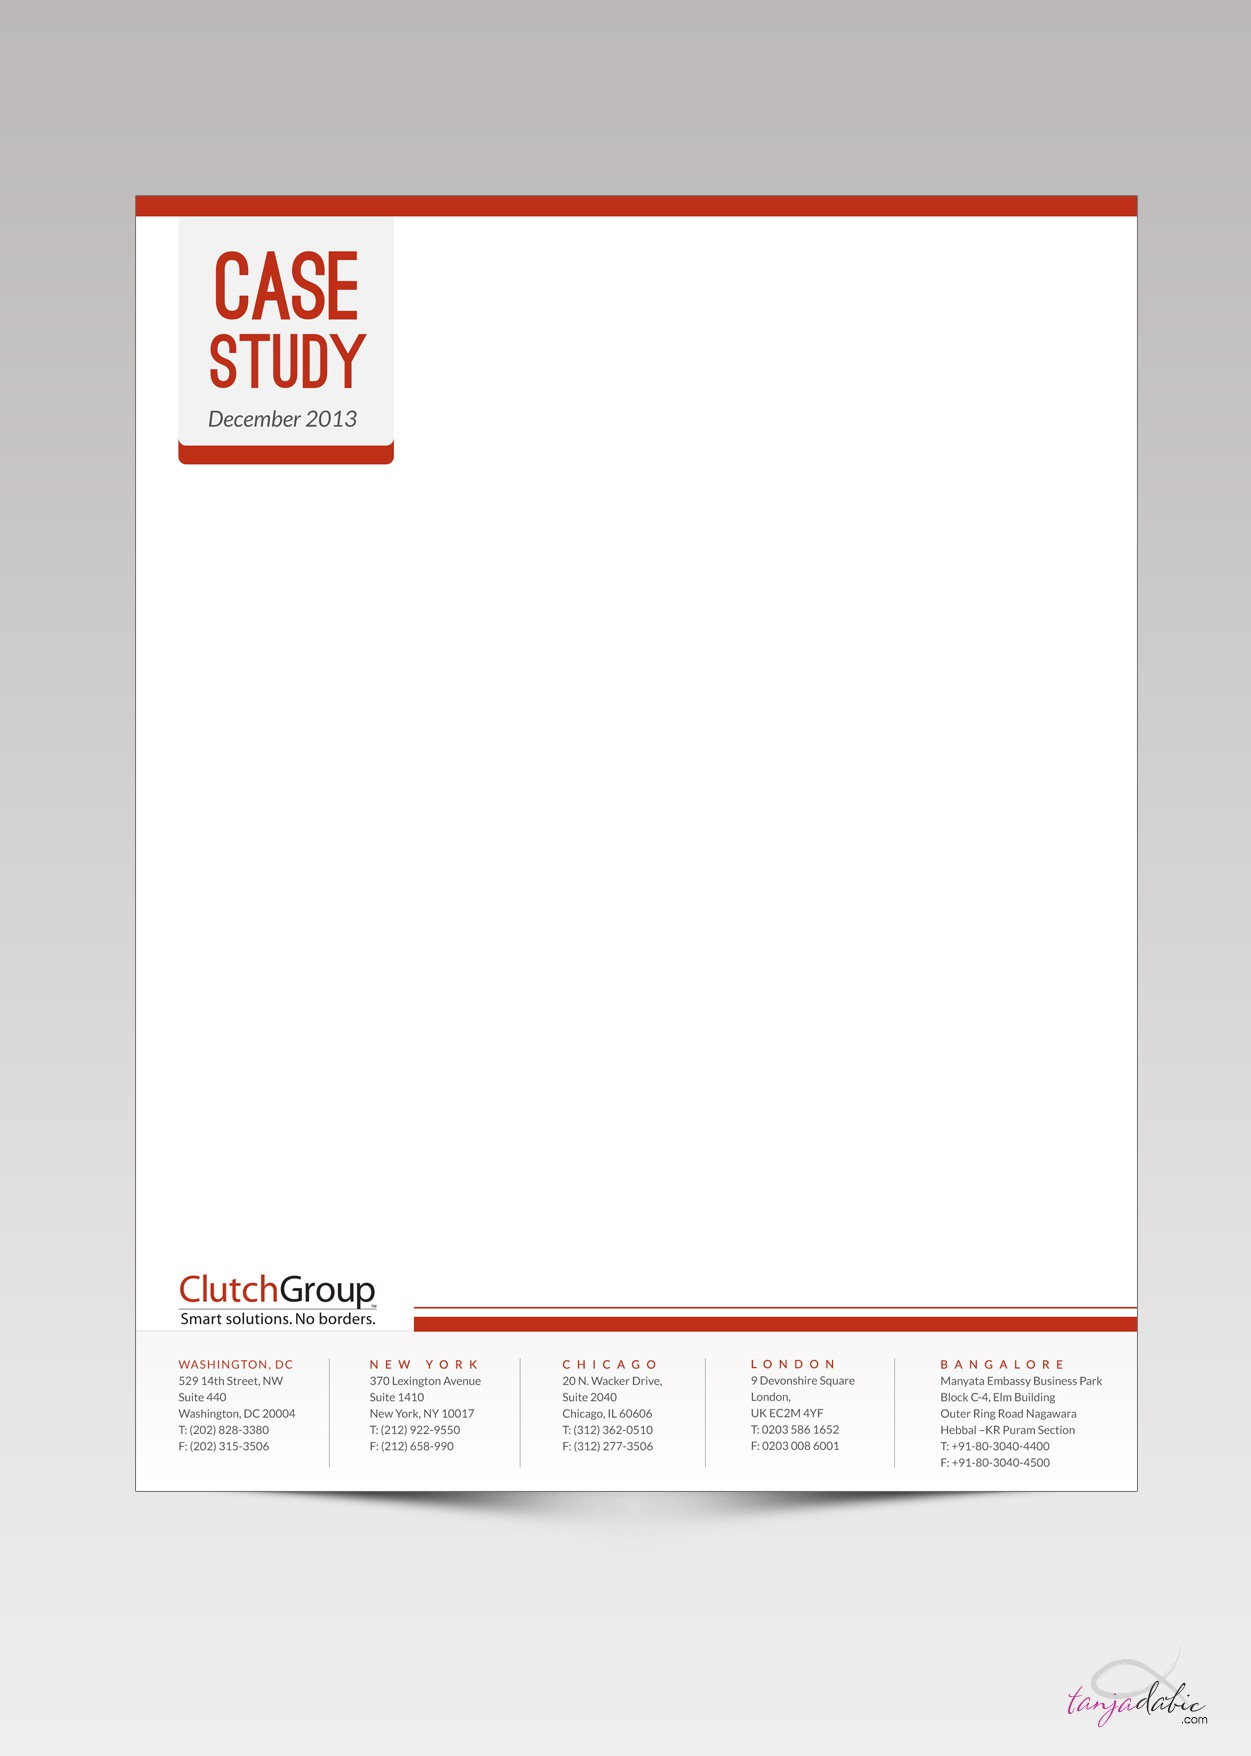 Case Study Template needed for Clutch Group